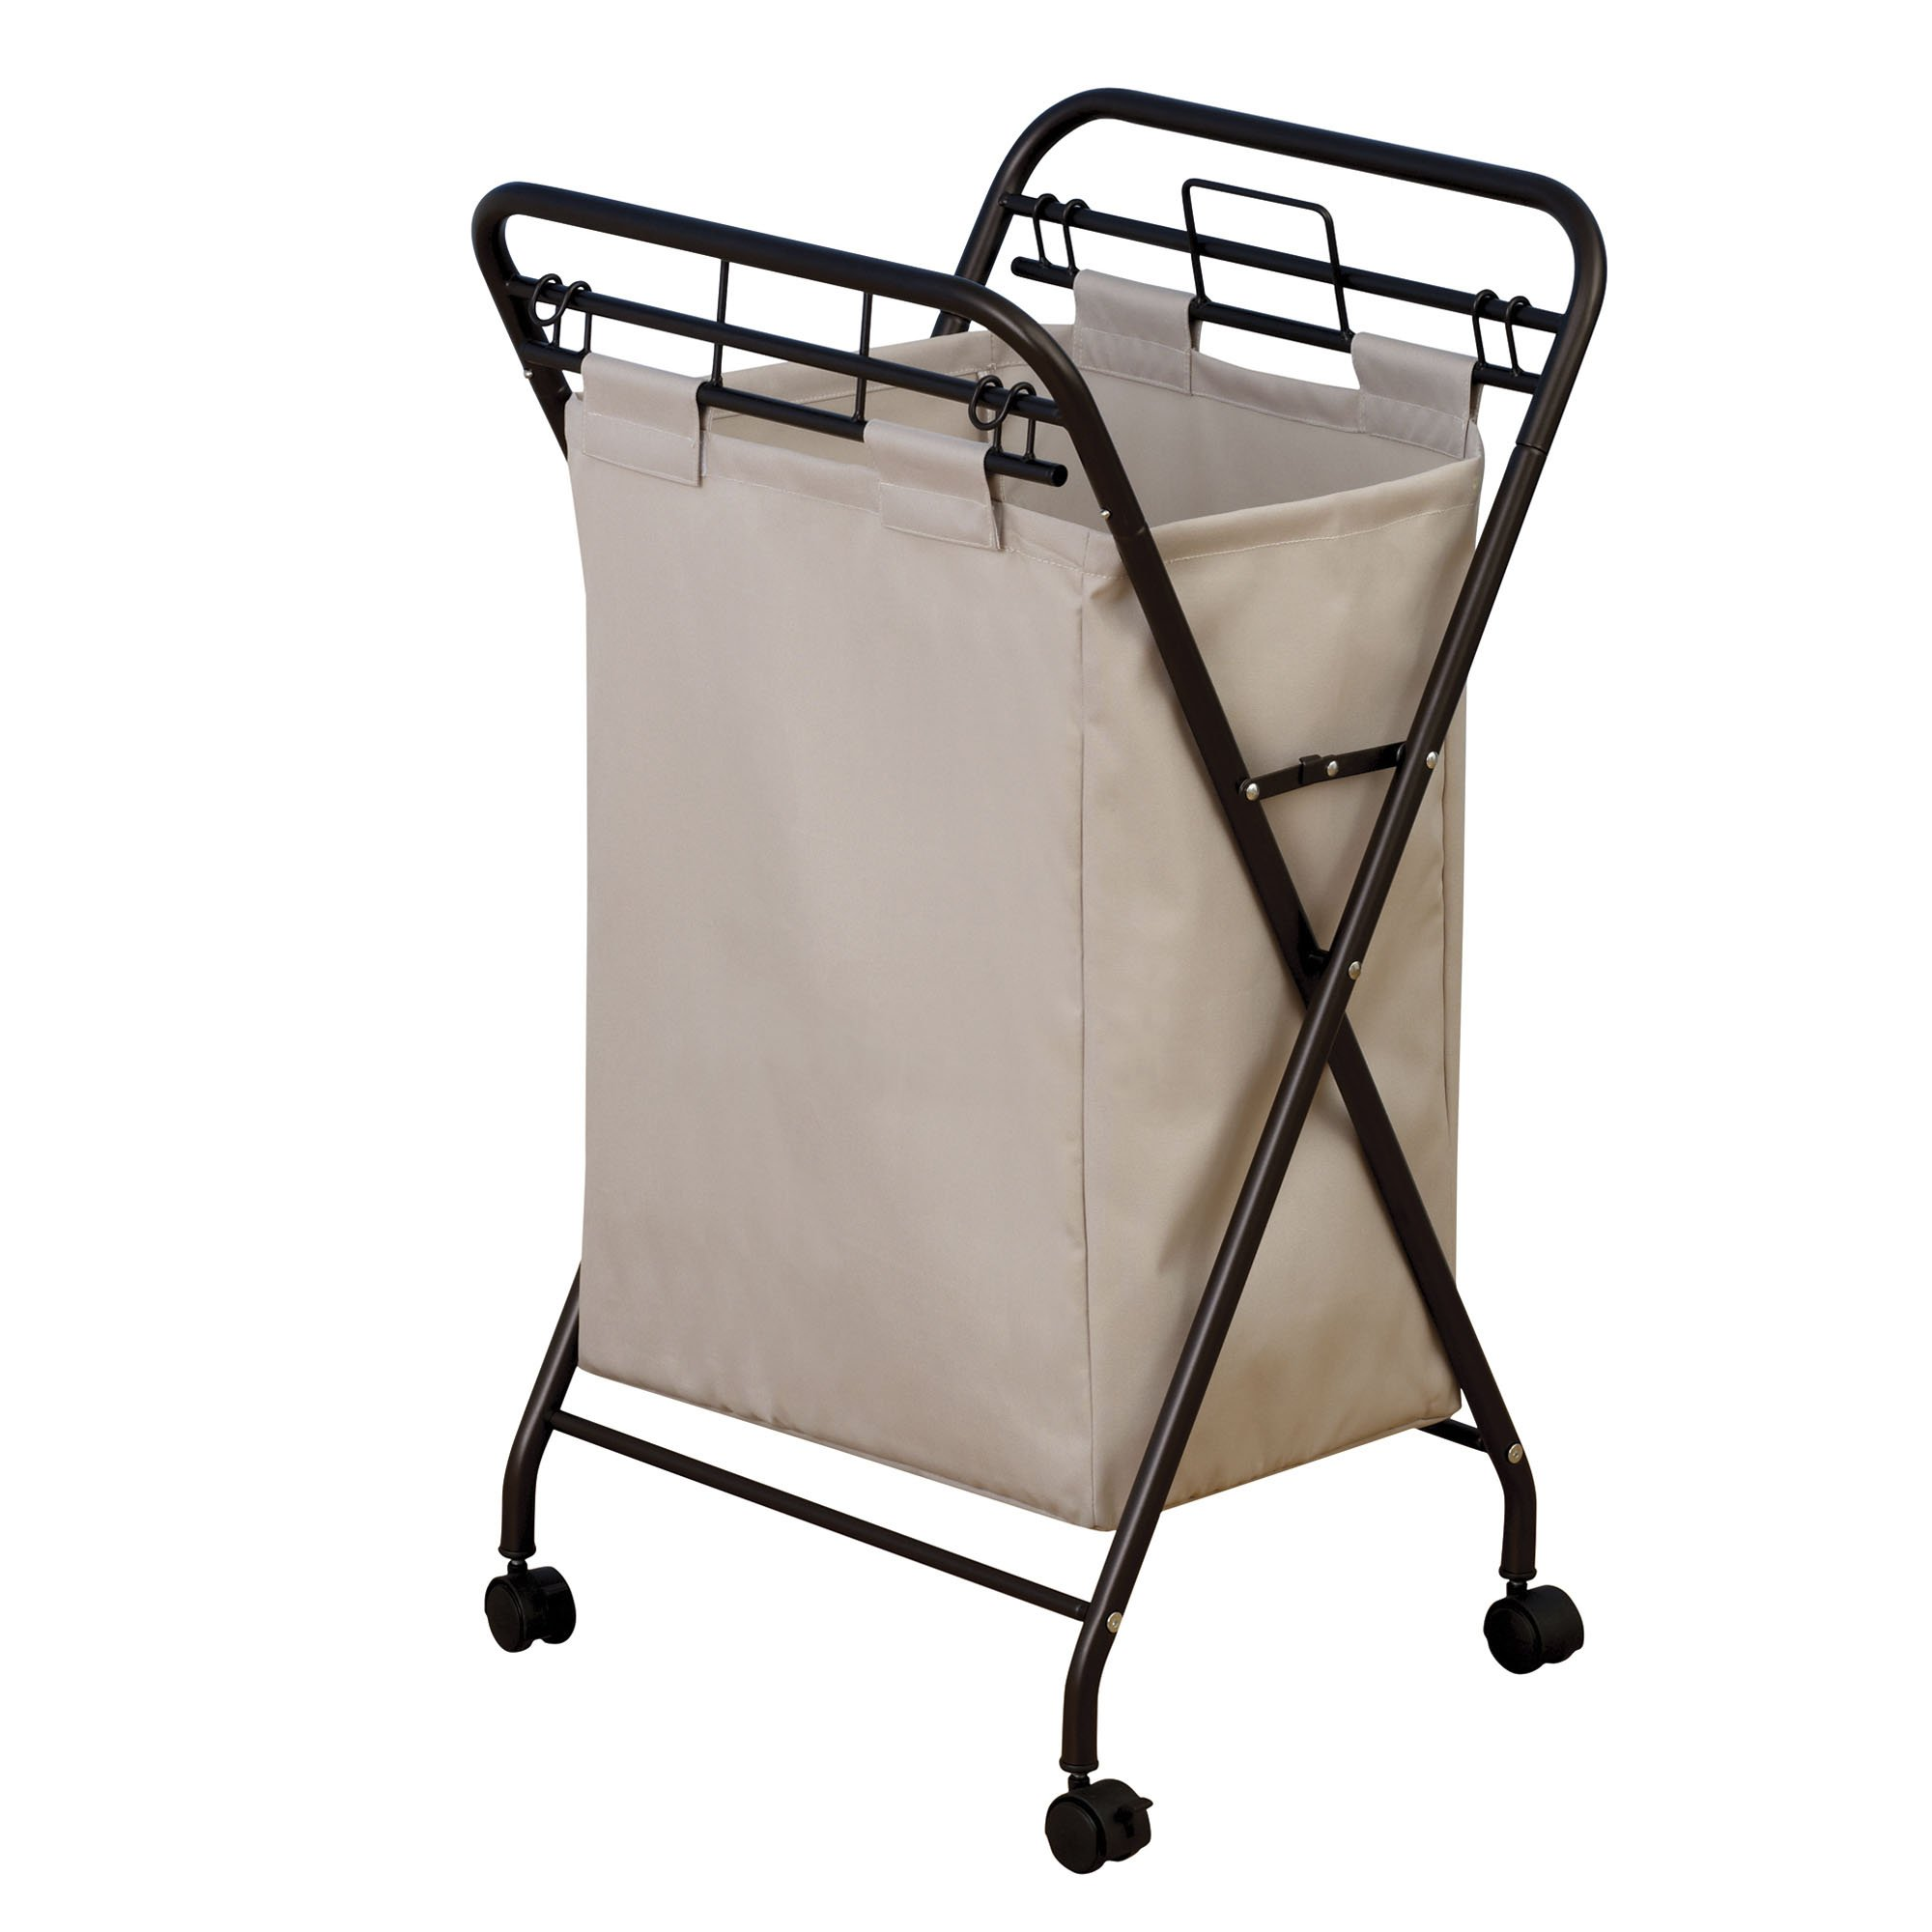 Household Essentials 7172 Rolling Laundry Hamper with Heavy Duty